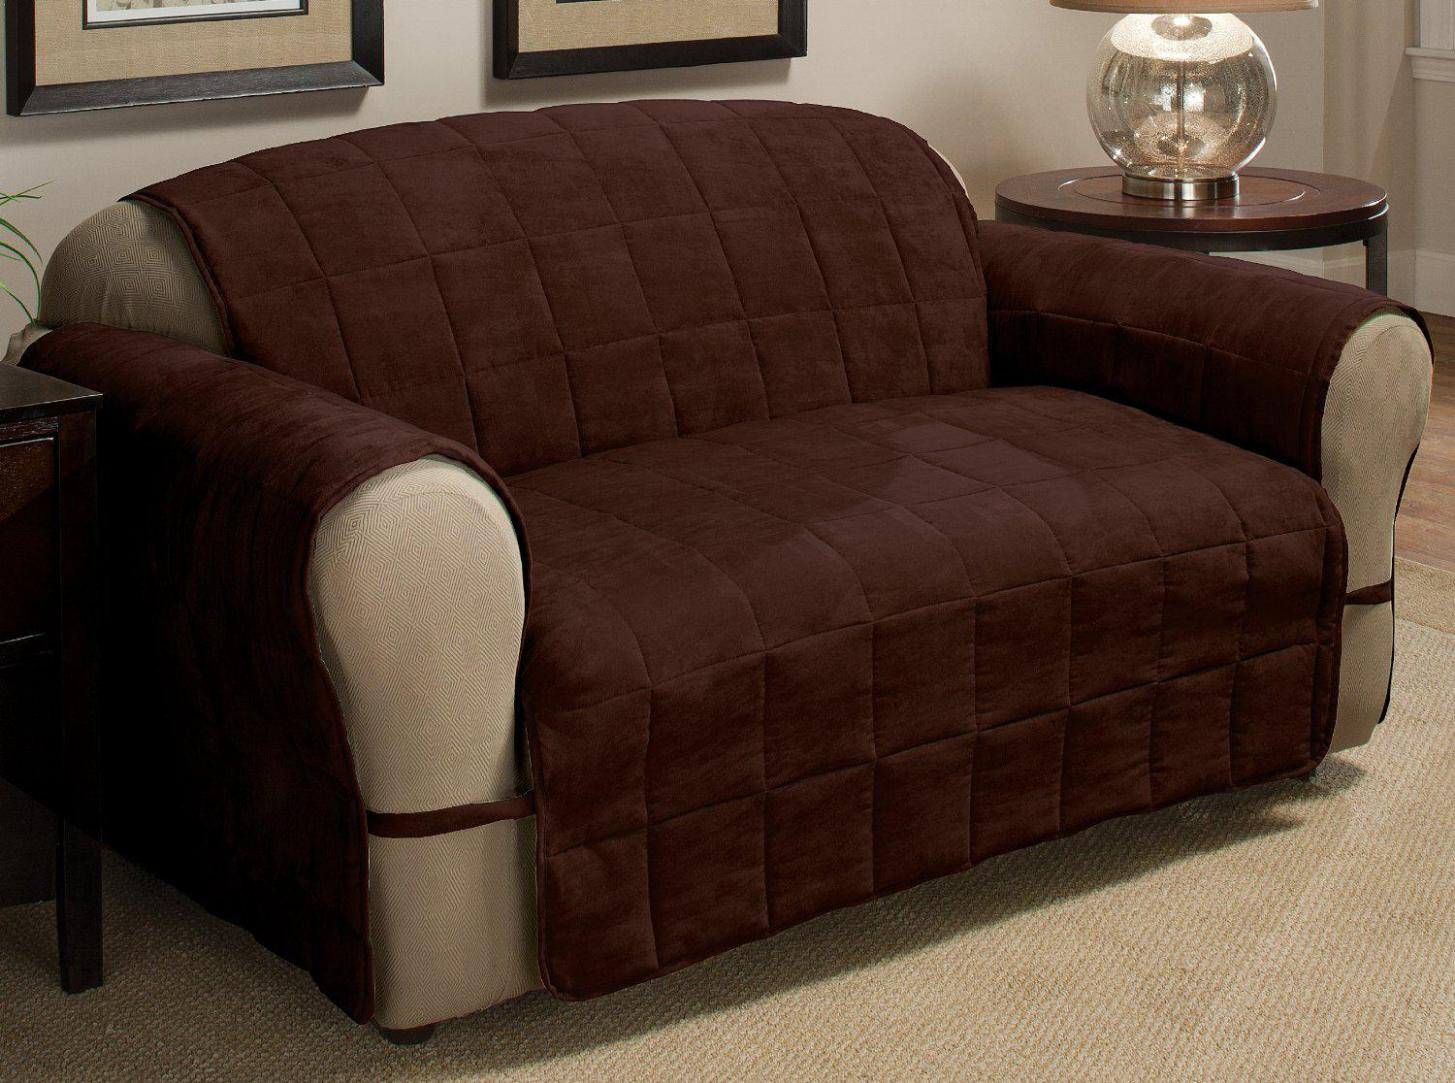 Image of: Slipcovers For Couches With Recliners